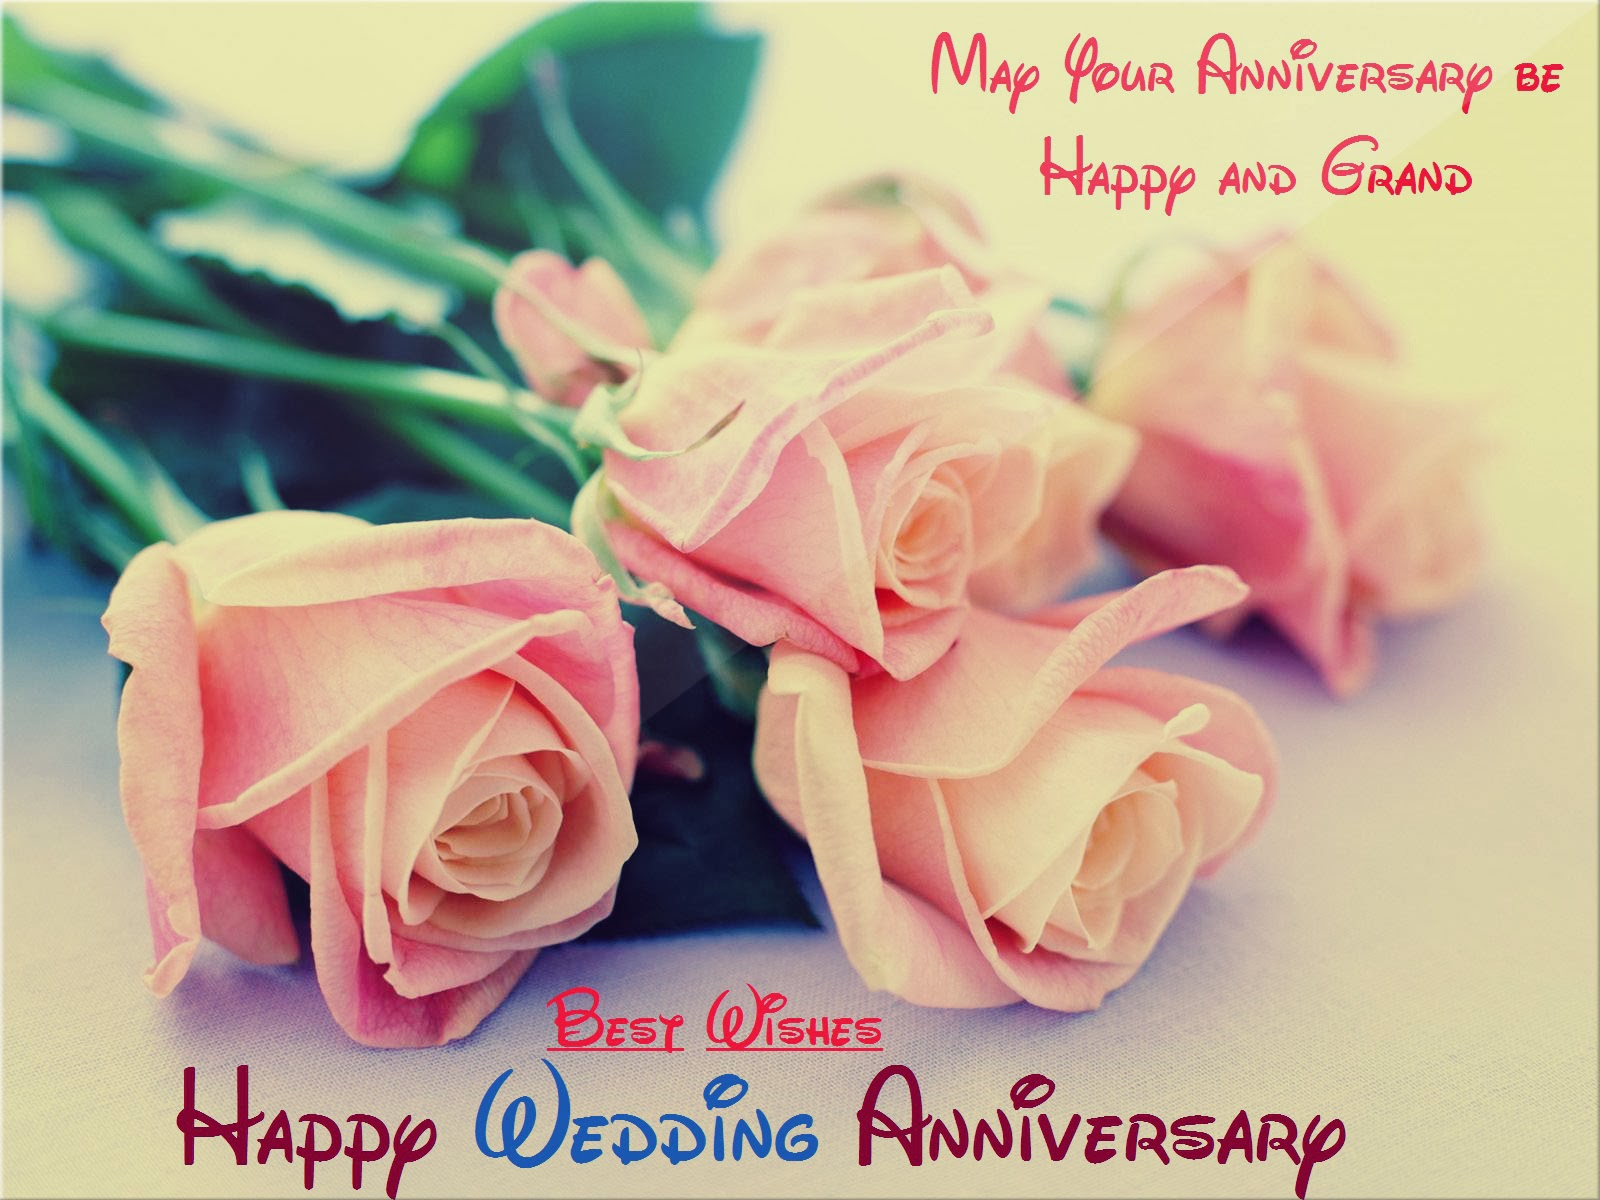 Wedding anniversary wishes for friends with special messages